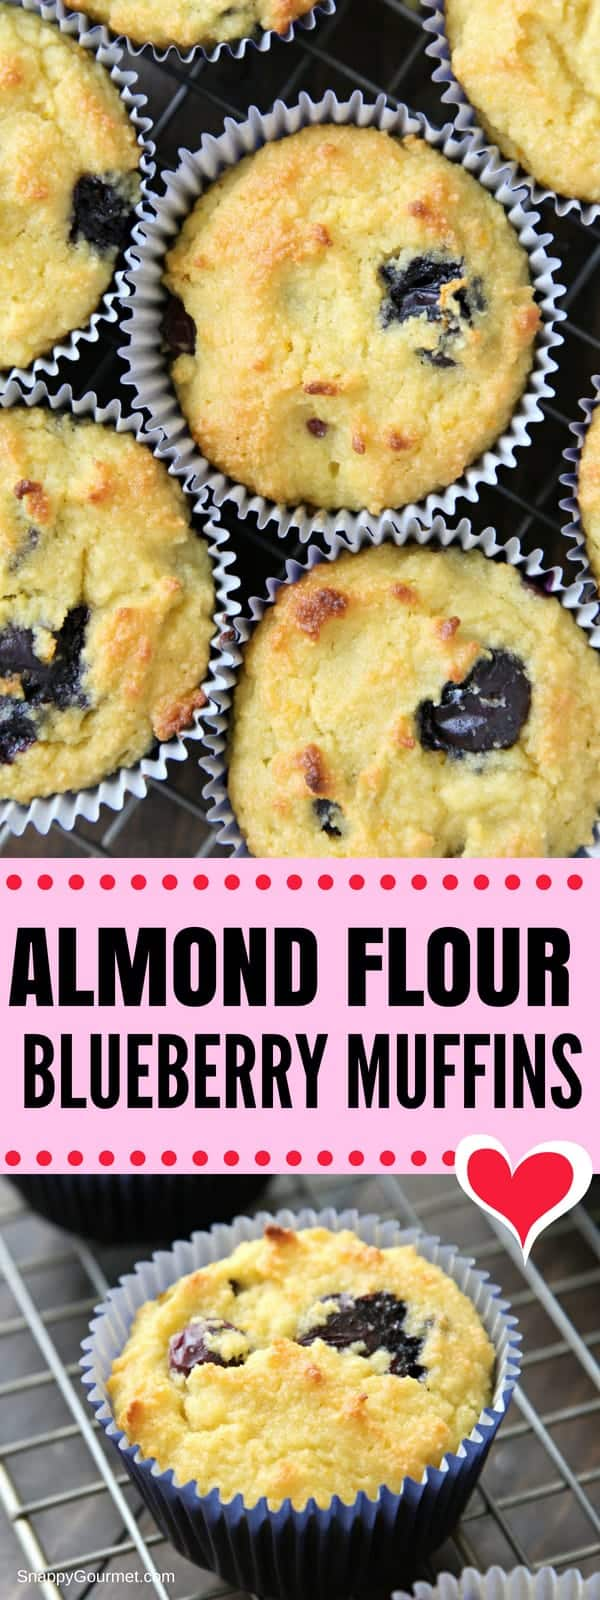 Almond Flour Blueberry Muffins Recipe - easy gluten free muffins that are homemade